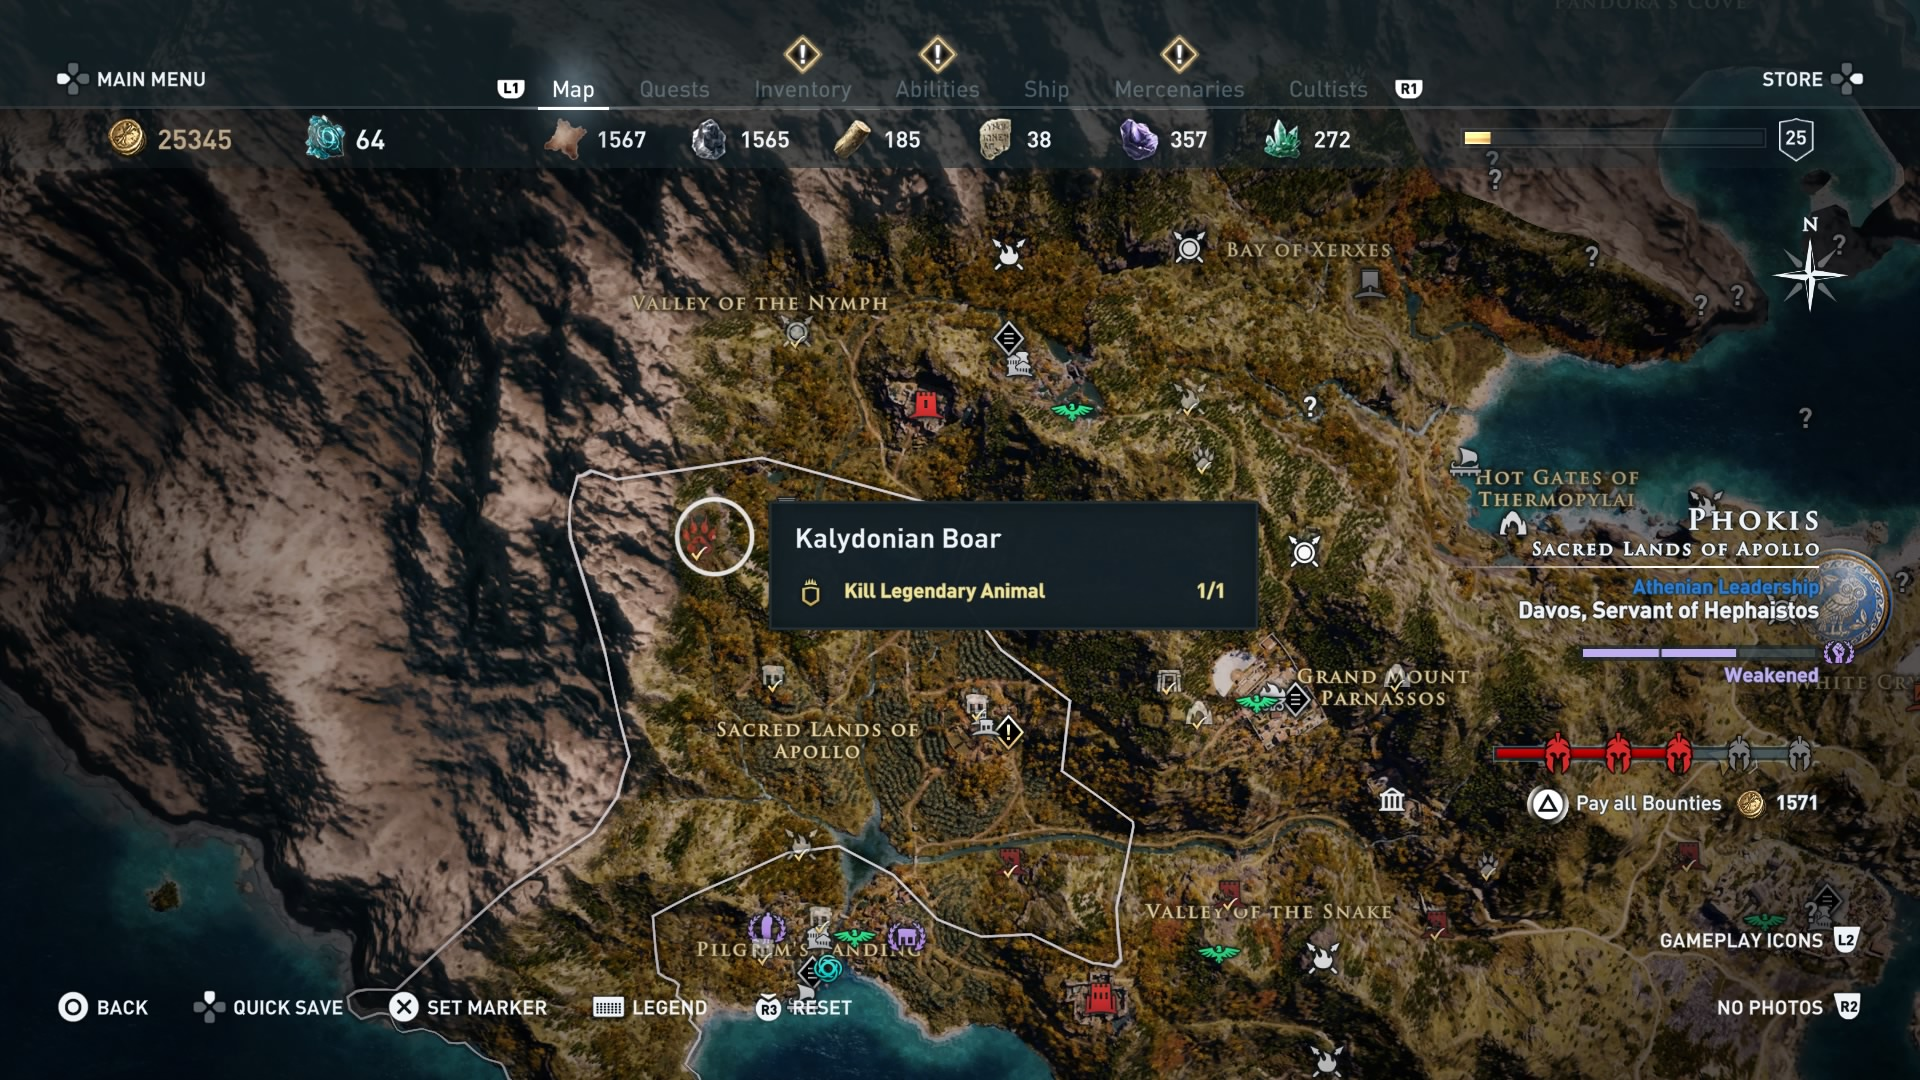 Assassin S Creed Odyssey How To Kill Kalydonian Boar Hind Of Keryneia Nemean Lion